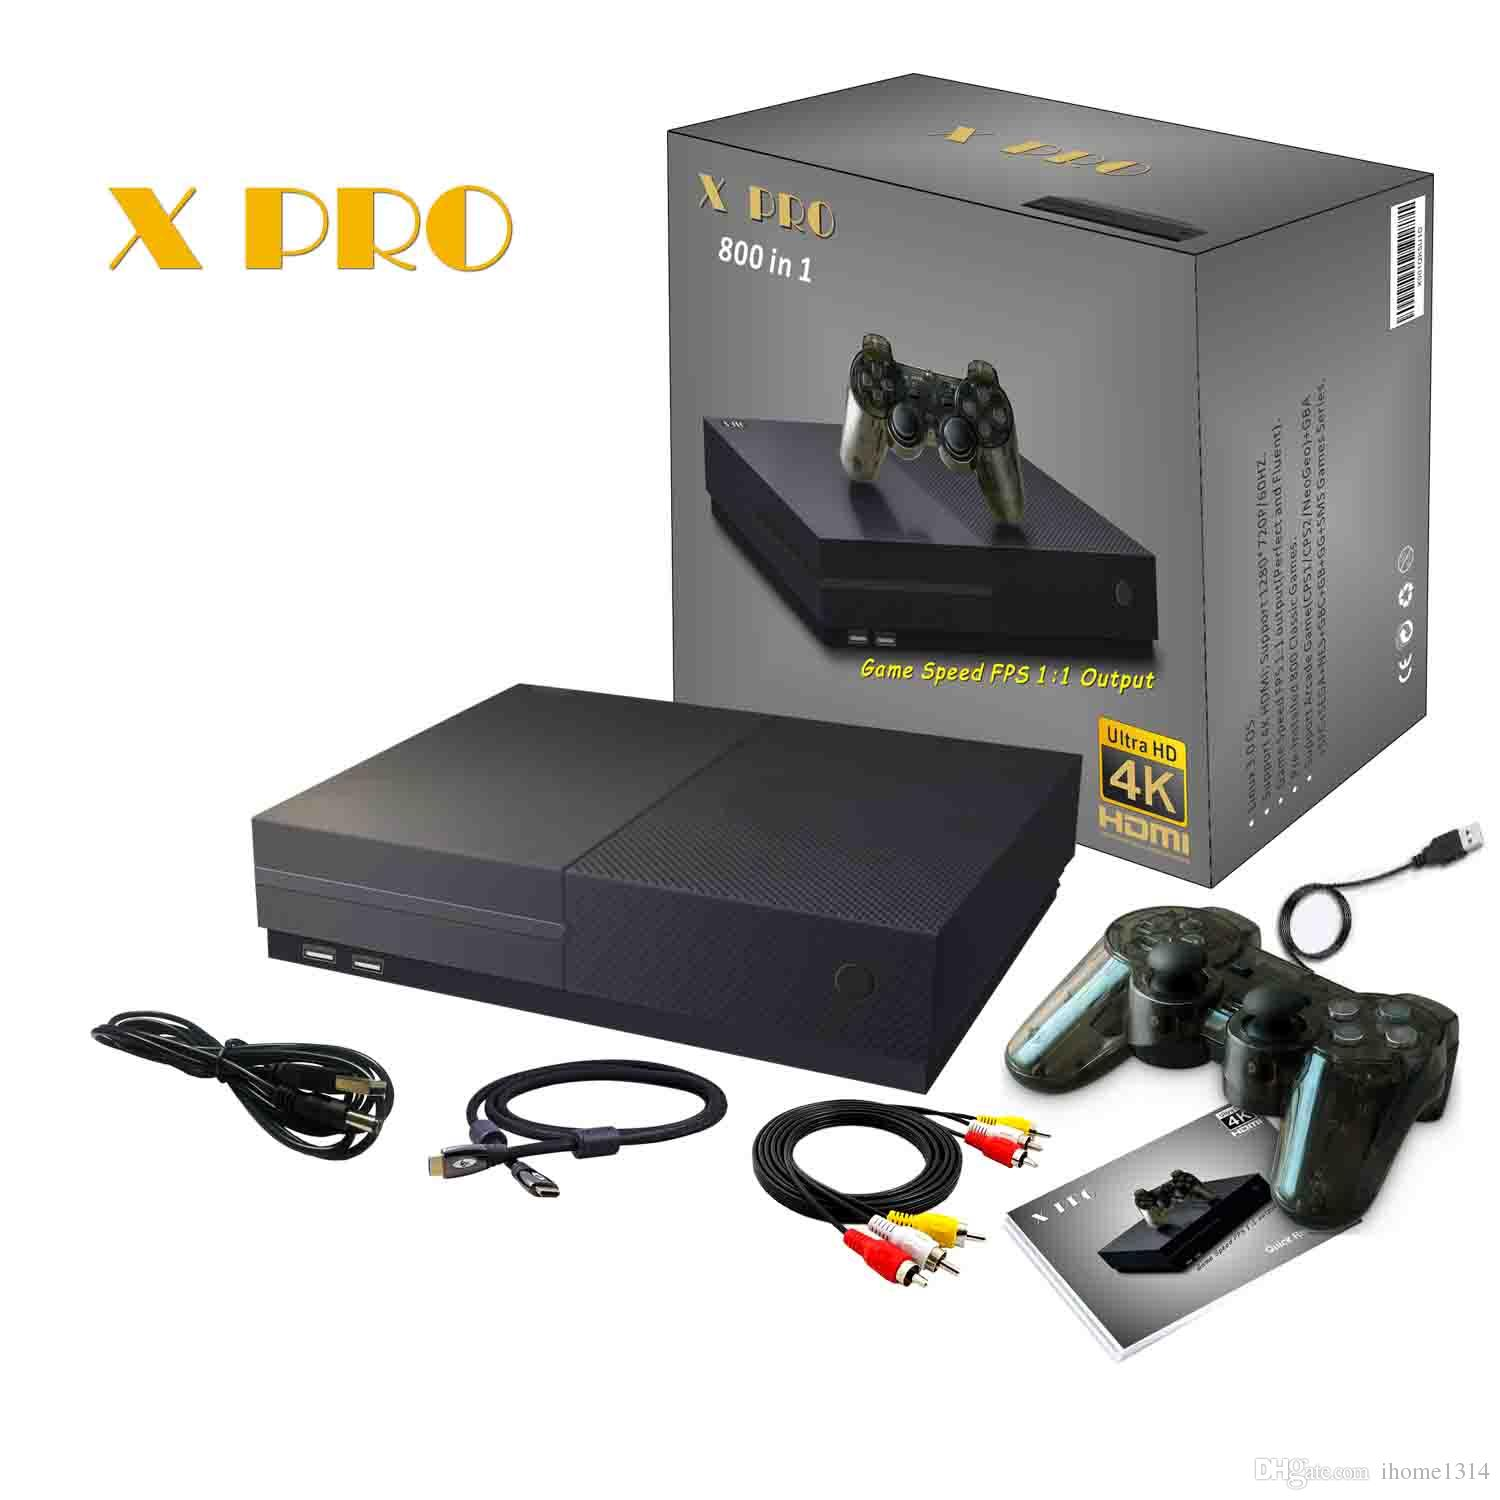 NEW 4K HDMI Xpro 800 in 1 support GBA,FC,GBC game console with all game  accessory in retail gift box DHL freeshipping